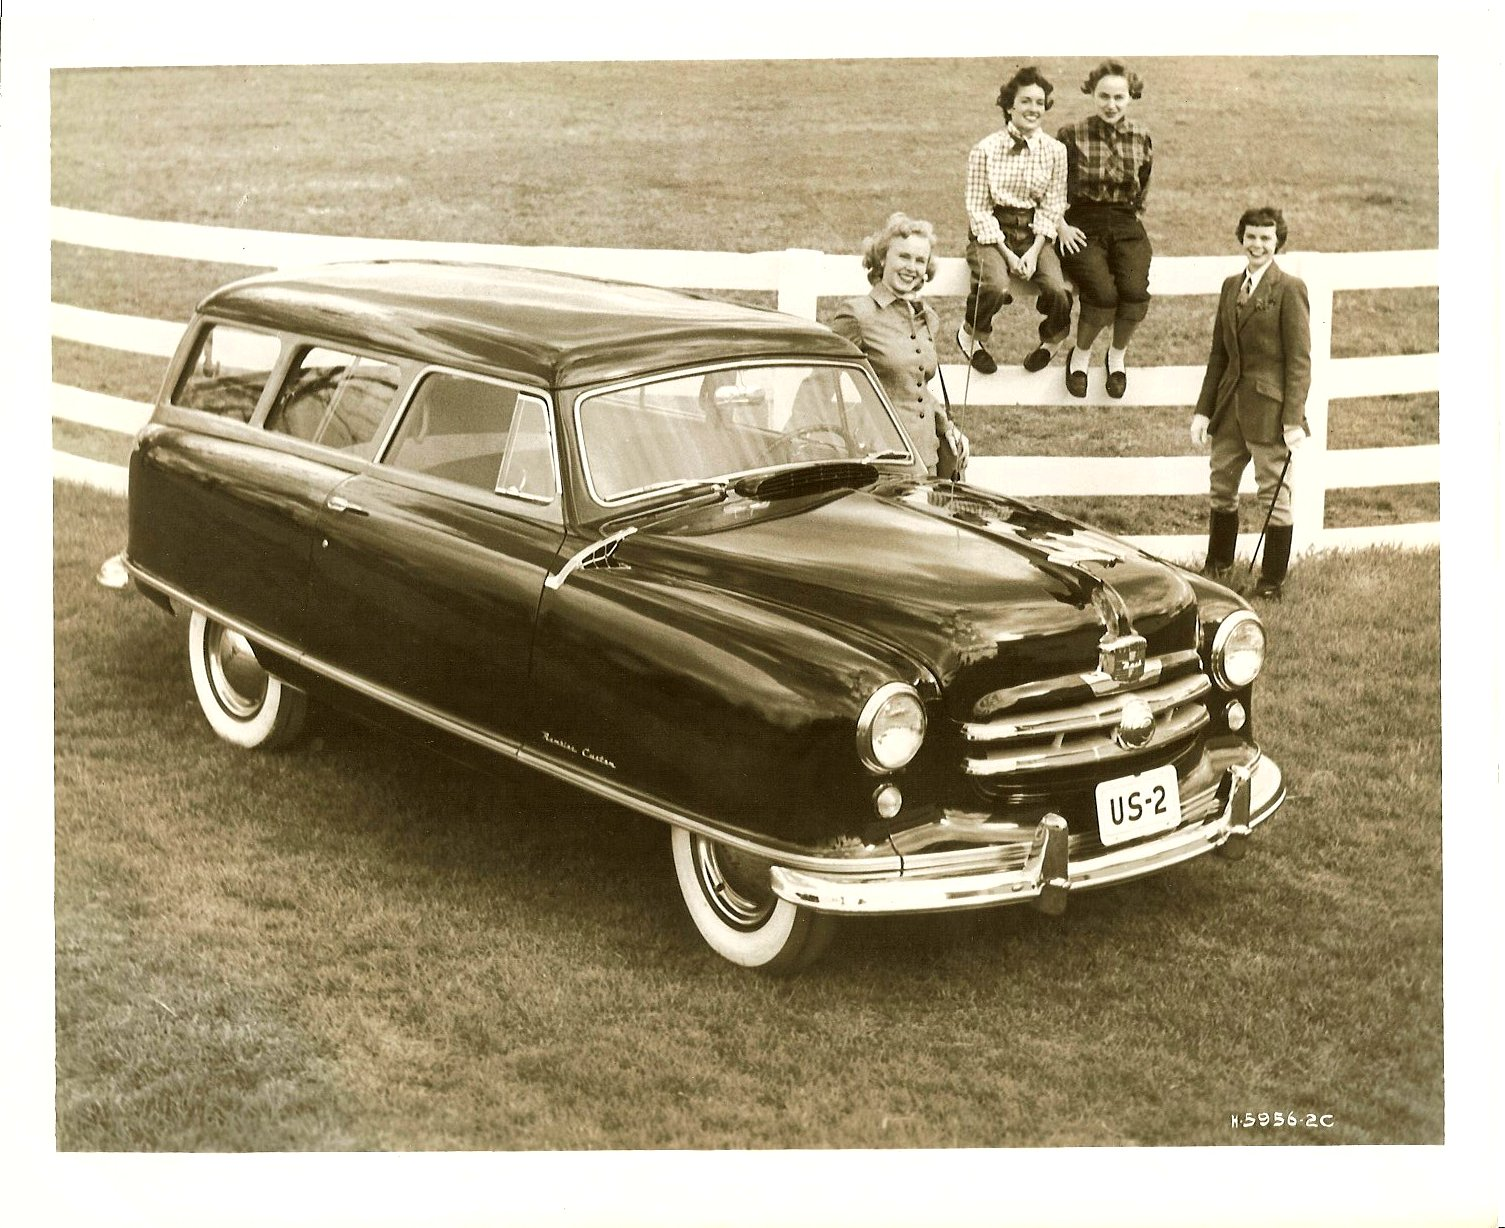 1951 NASH Rambler Custom Station Wagon Note: 1951 Flying Lady Hood Ornament 10″x8″ Black & White photograph H-5956-2C